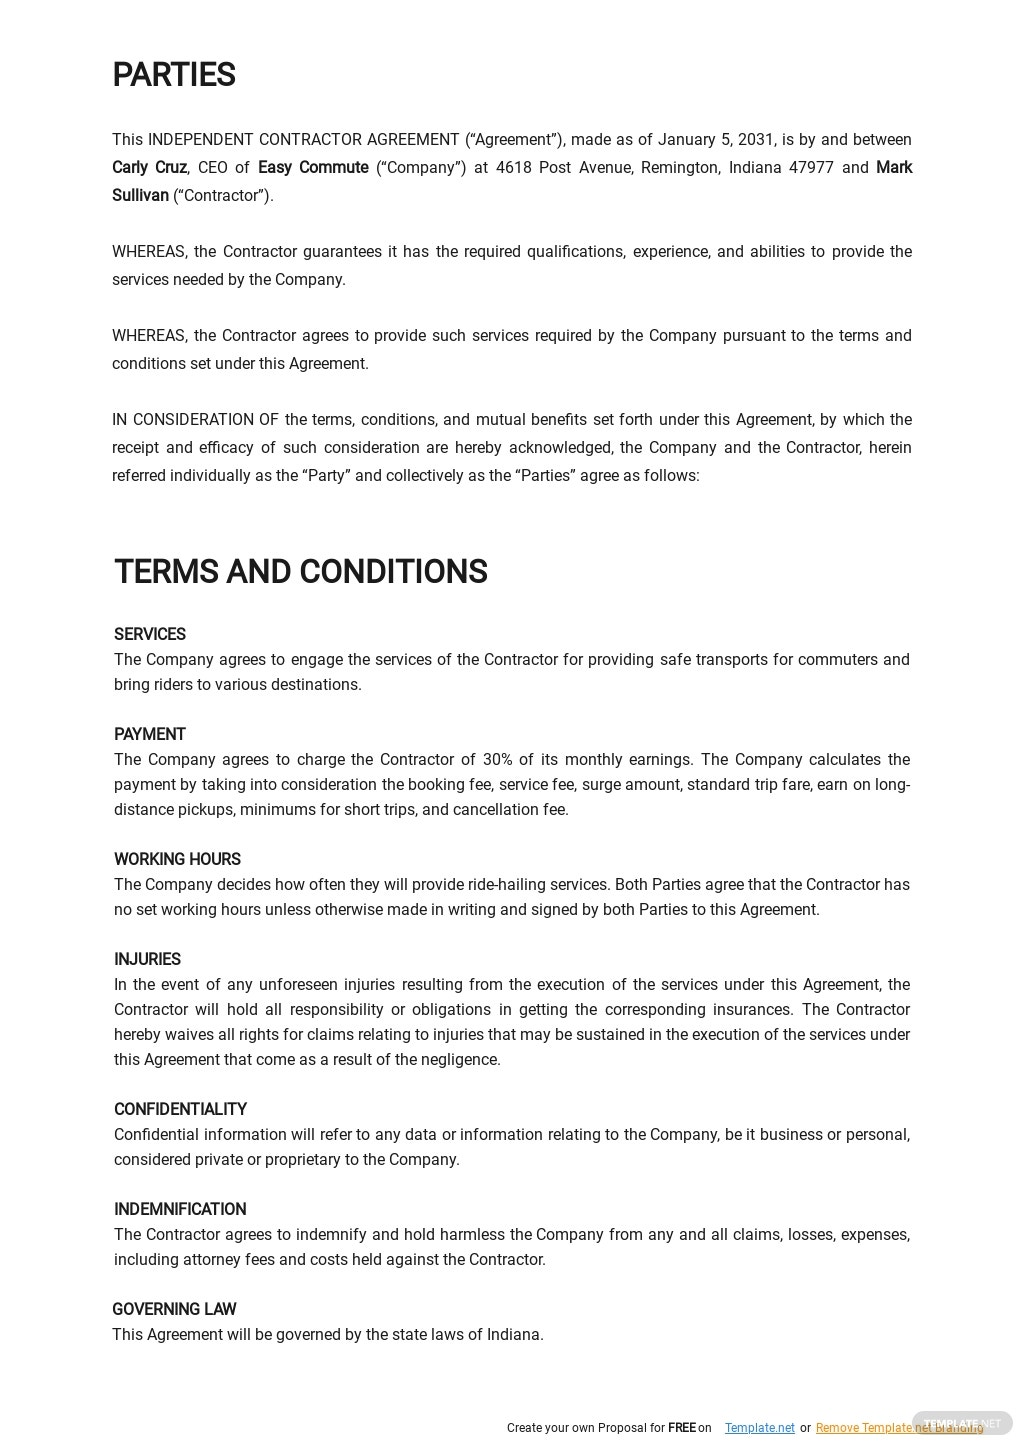 Independent Contractor Agreement Template 1.jpe